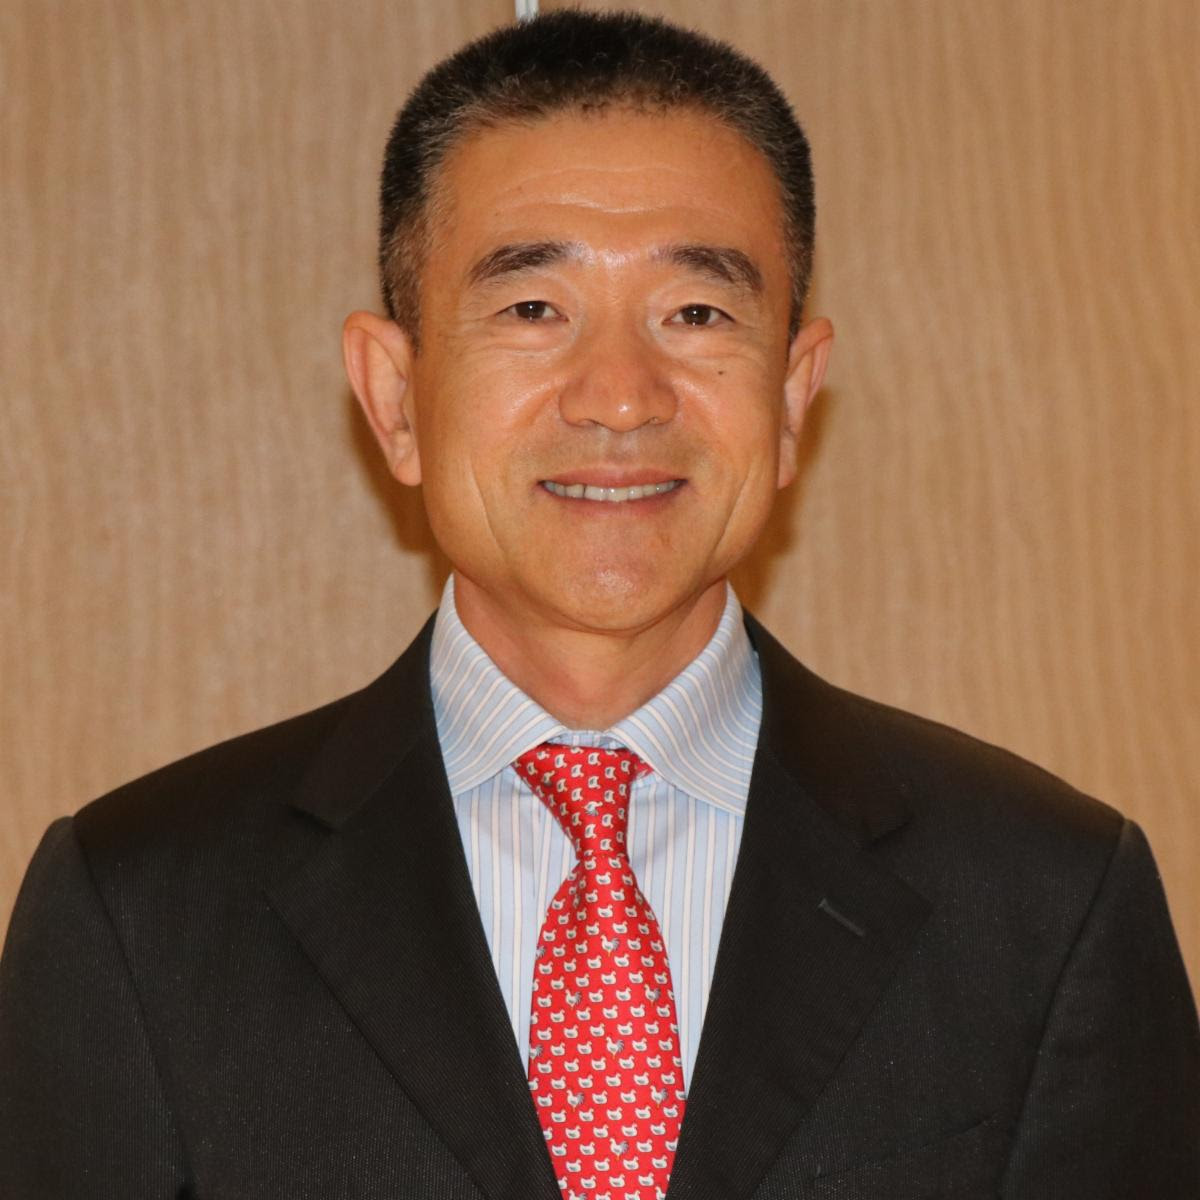 Michael Zhao, President & CEO of Array Networks, Inc